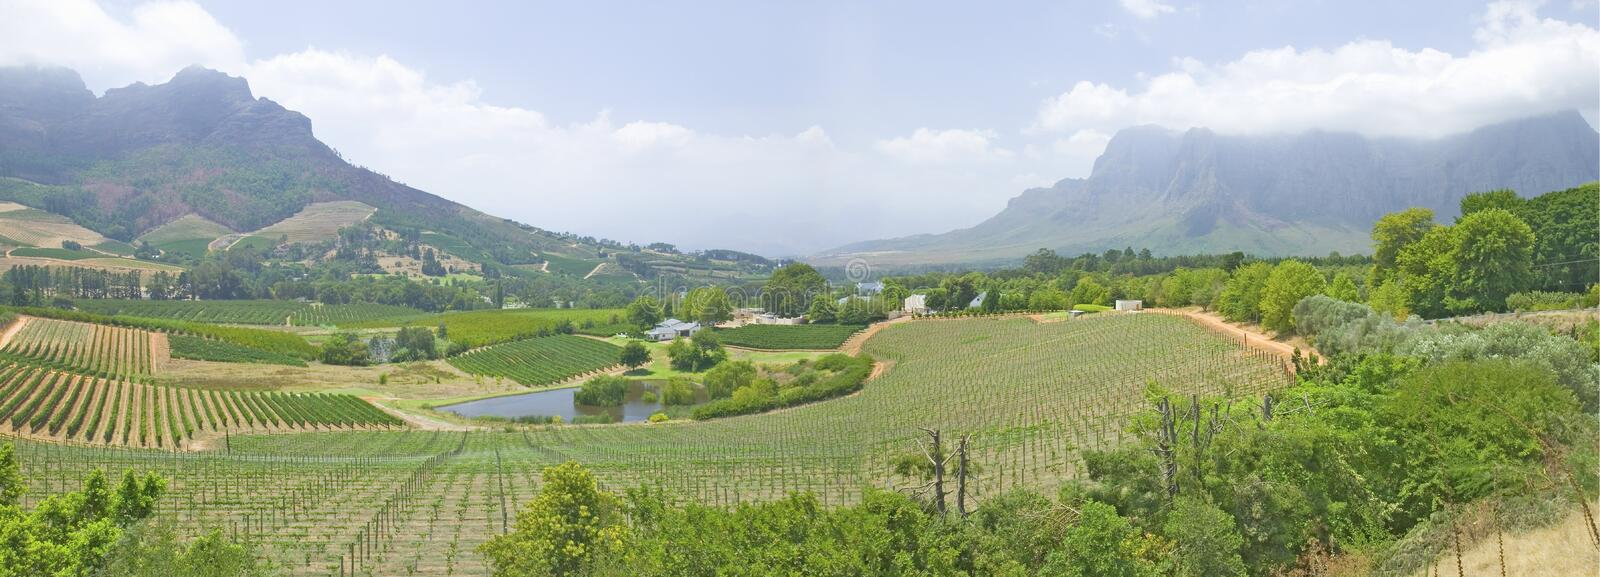 Panoramic view of Stellenbosch wine route and valley of vineyards, outside of Cape Town, South Africa royalty free stock photo